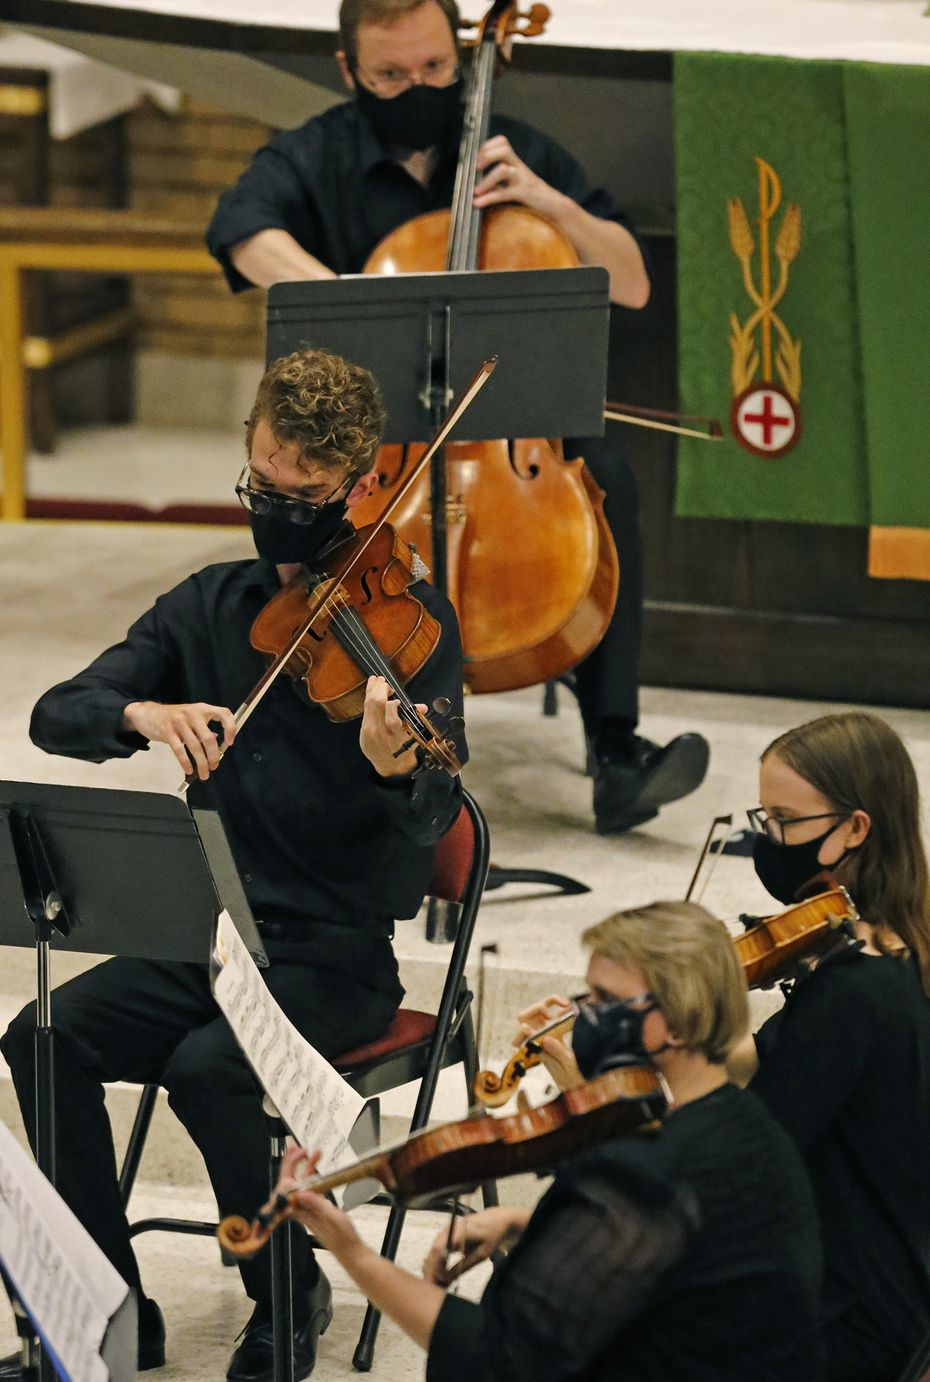 The Orchestra of New Spain performed a concert of music by Black composers to celebrate Juneteenth at the Zion Lutheran Church in Dallas on June 12.